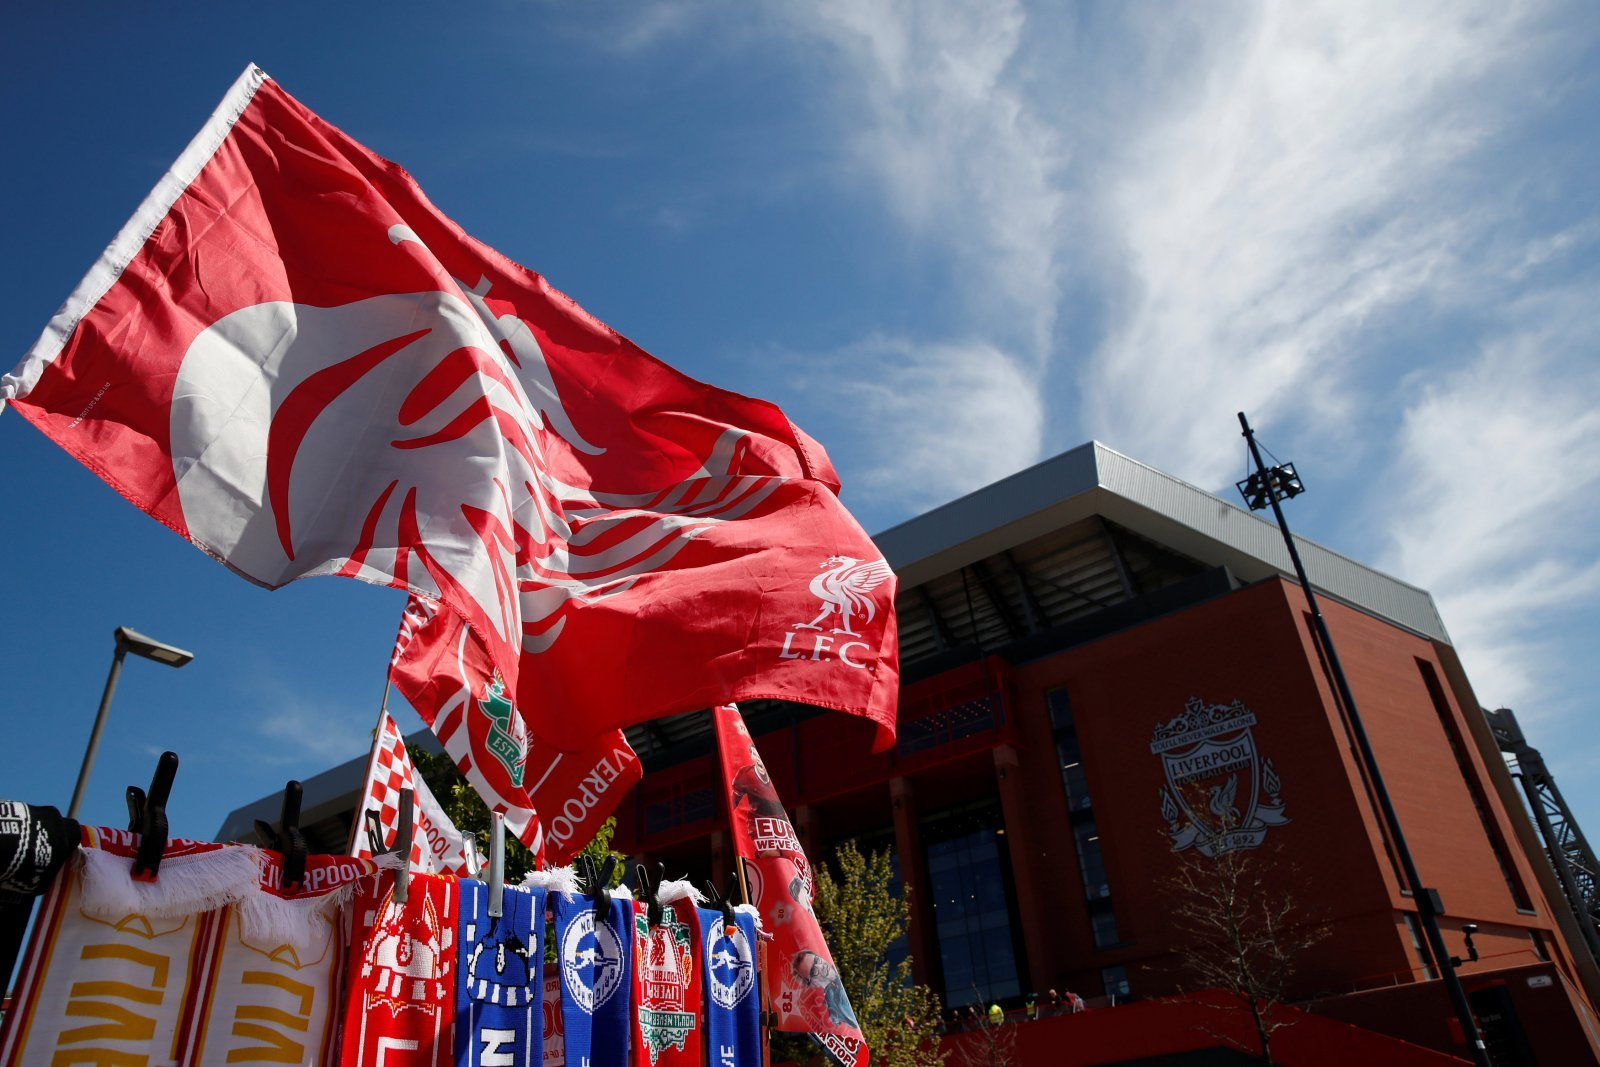 Liverpool fans happy to renew New Balance deal